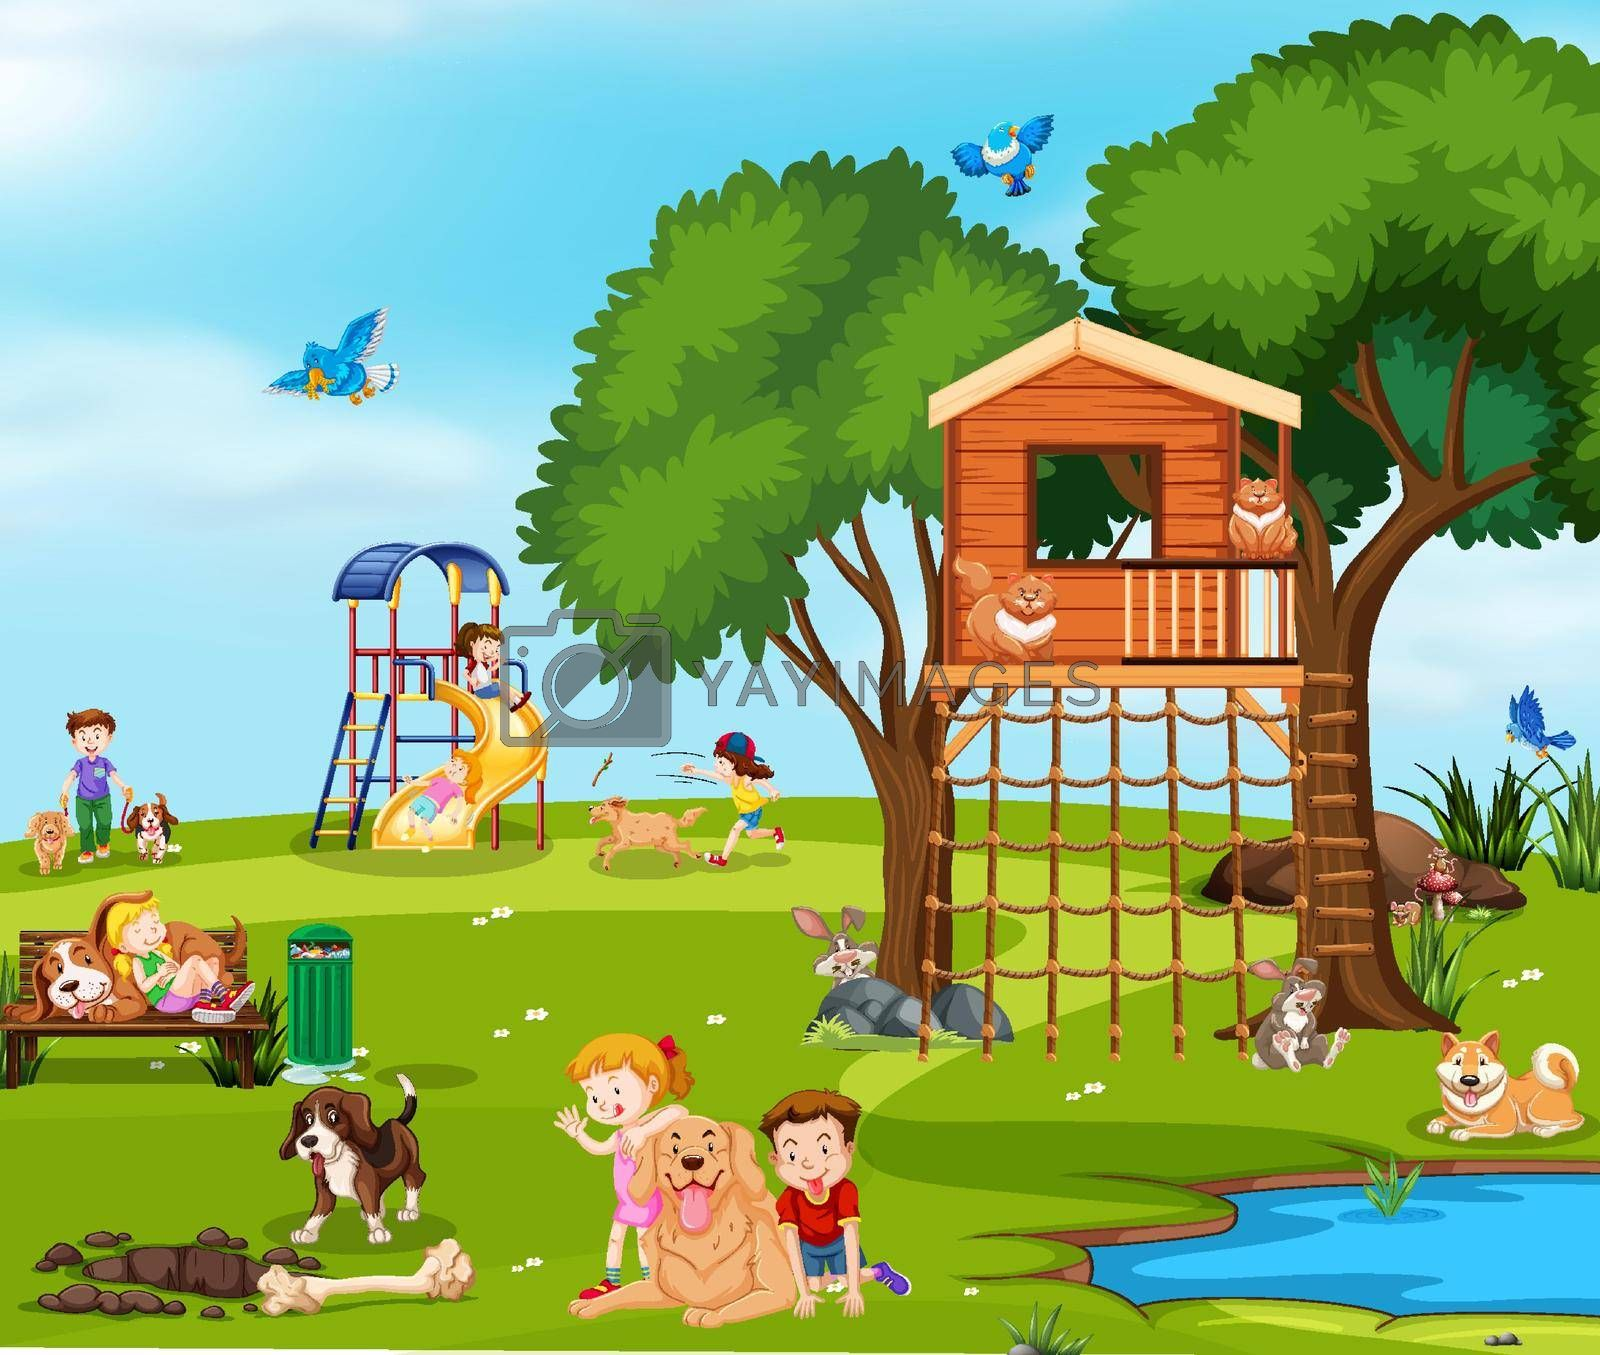 Royalty free image of Children playing with pets in the park by iimages